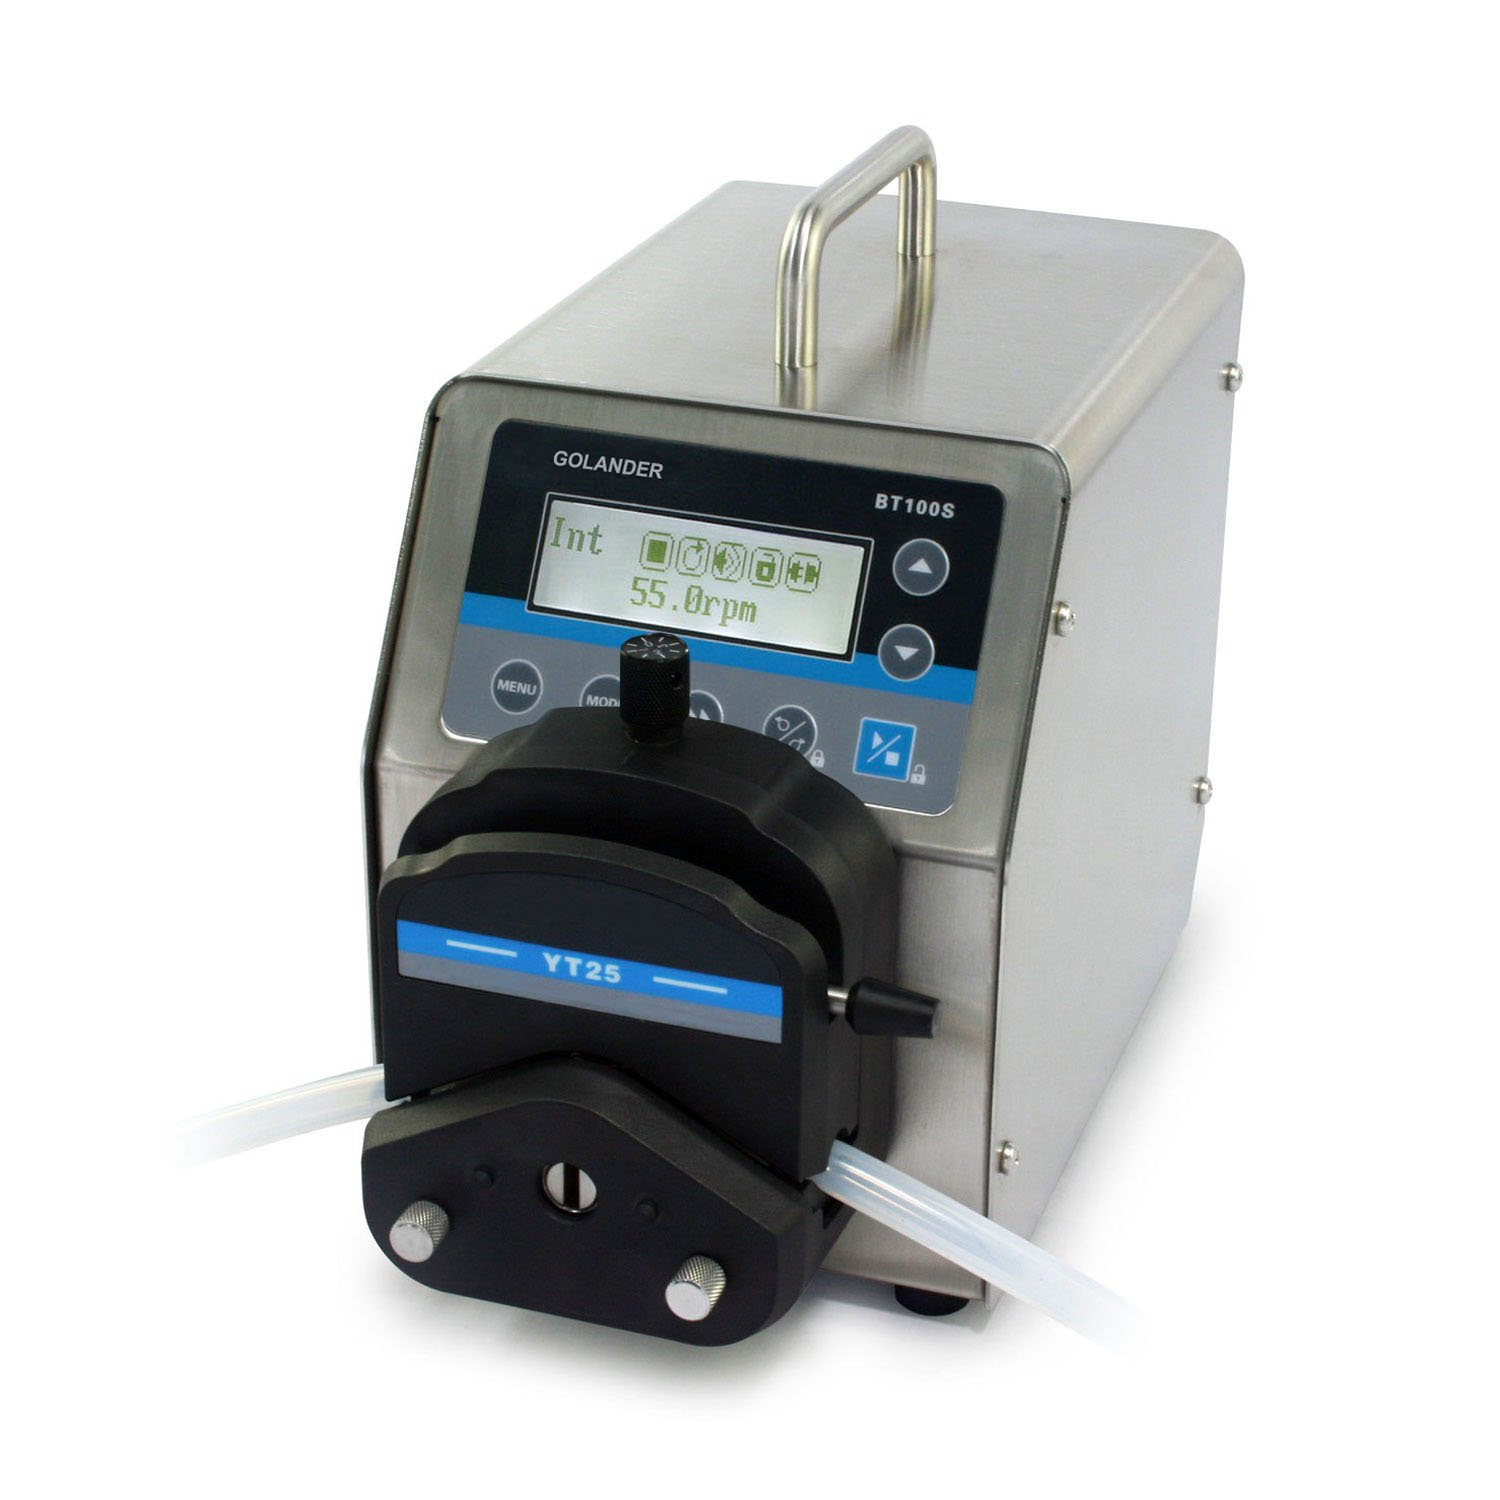 BT100S Basic Variable Speed Peristaltic Pump with Pump Head YT25 (1 Channel), Flow Rate 0.17~720 mL/min Per Channel